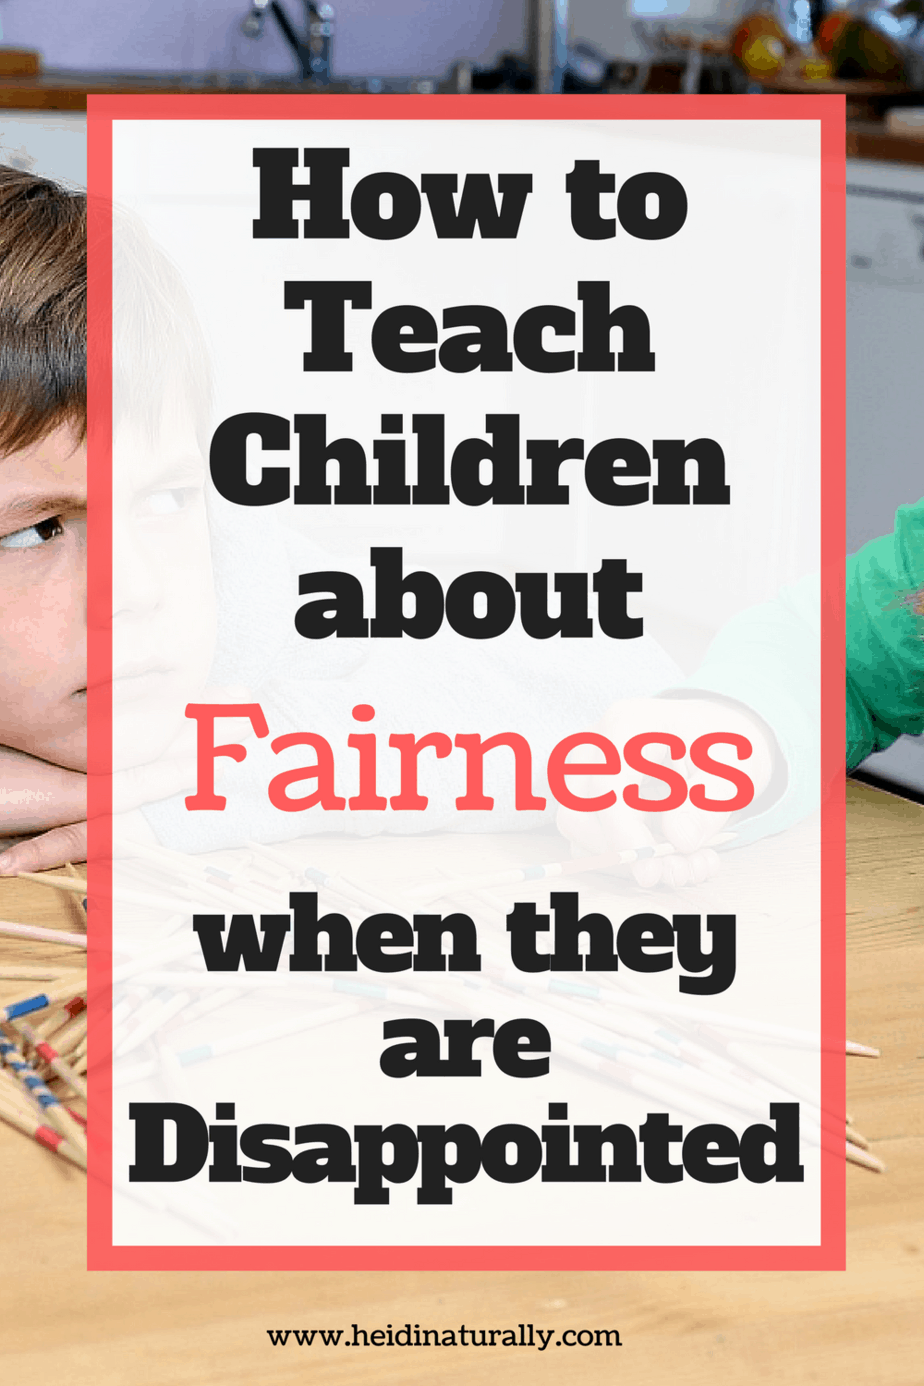 Fairness is an important part of life that is often not achieved. Learn how to teach children when to speak up and when to look for gratitude.